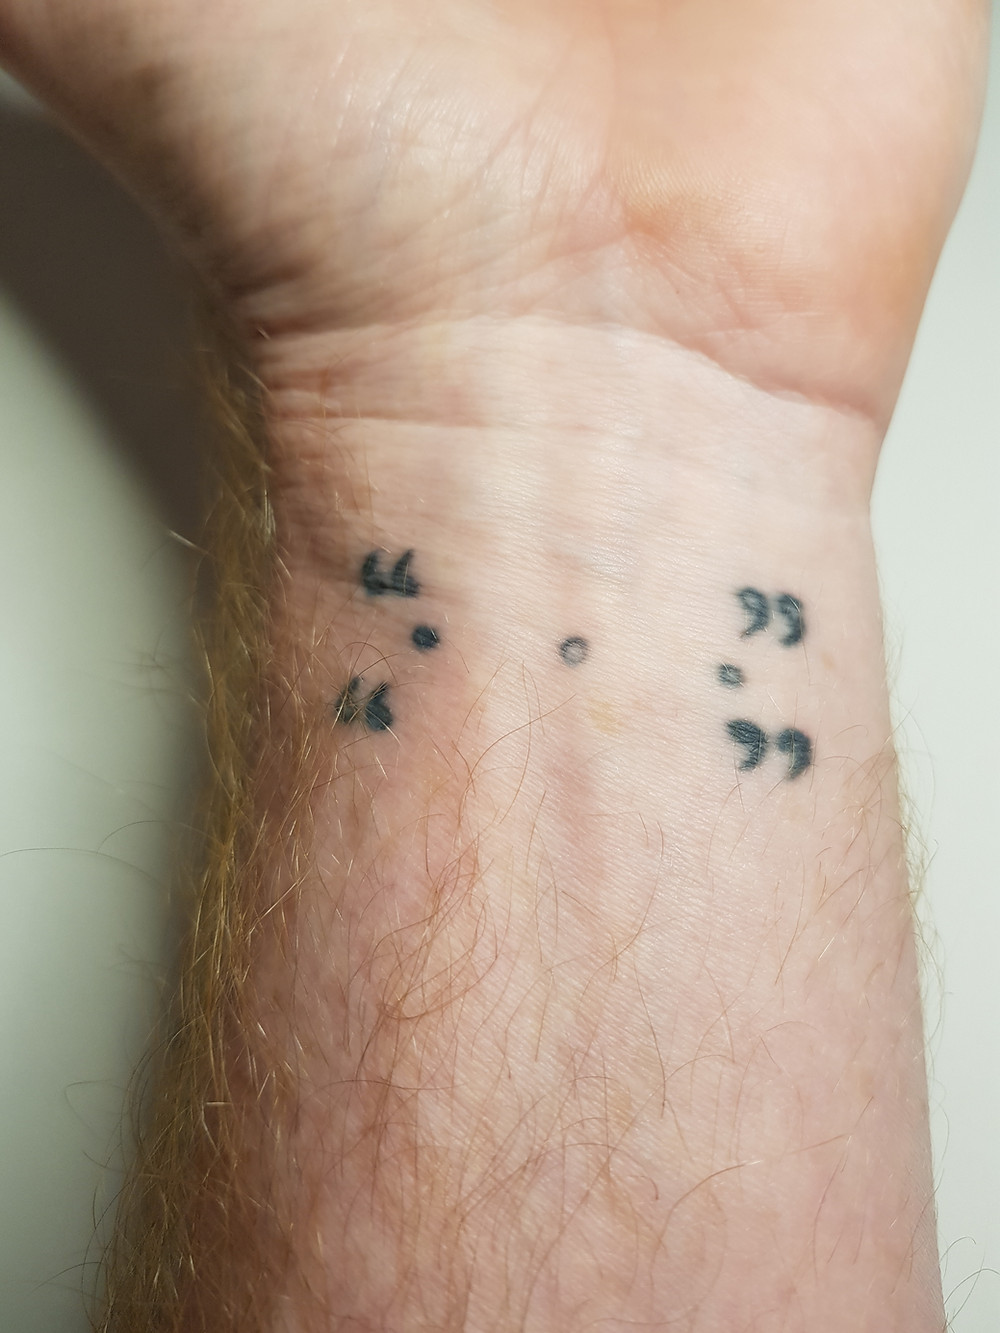 tattoo on a wrist of punctuation marks